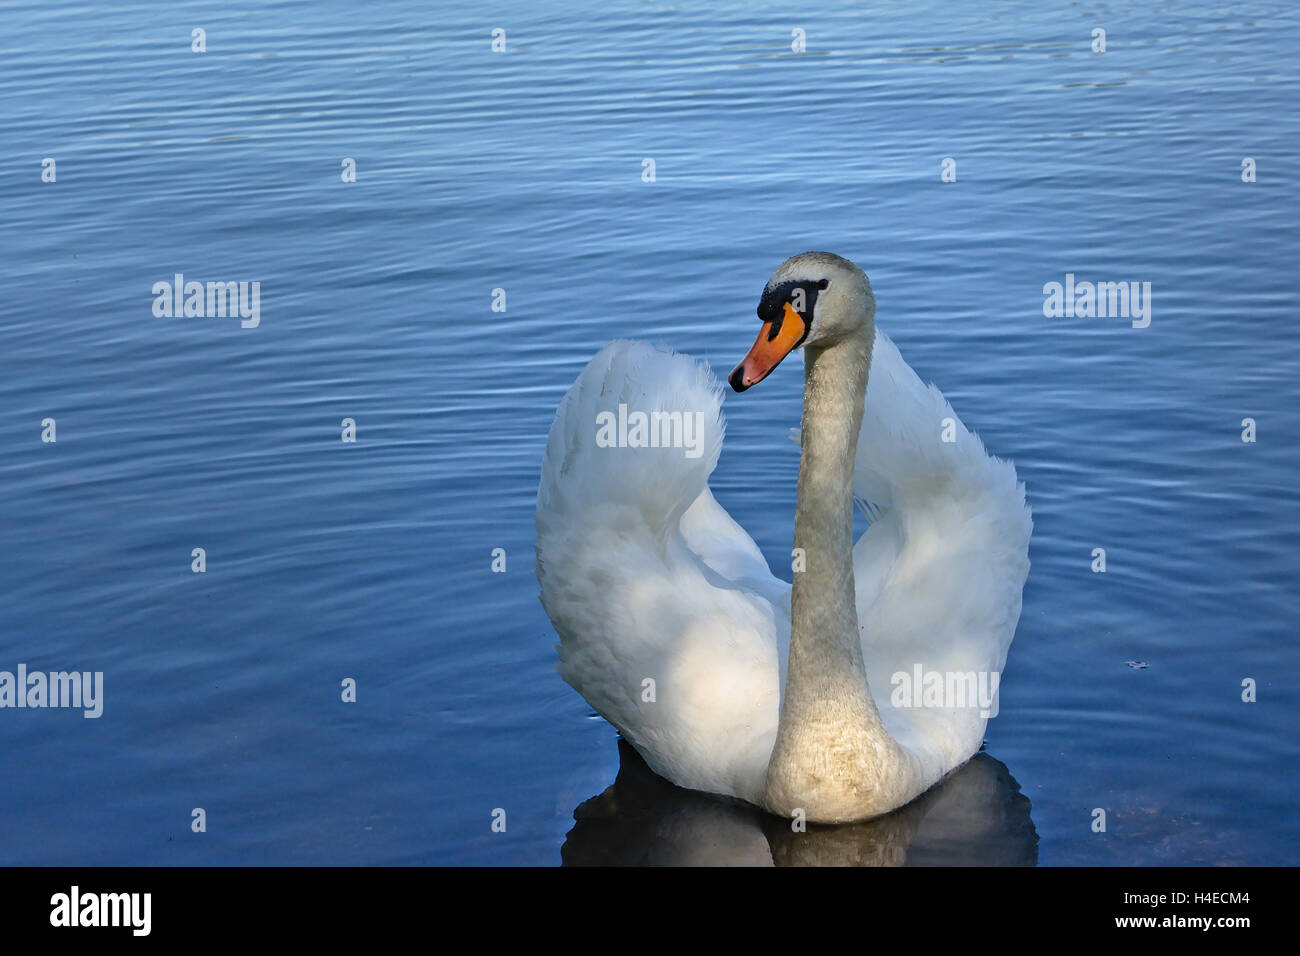 Frontal view of mute swan swimming in 'busking' pose, with wings up. - Stock Image